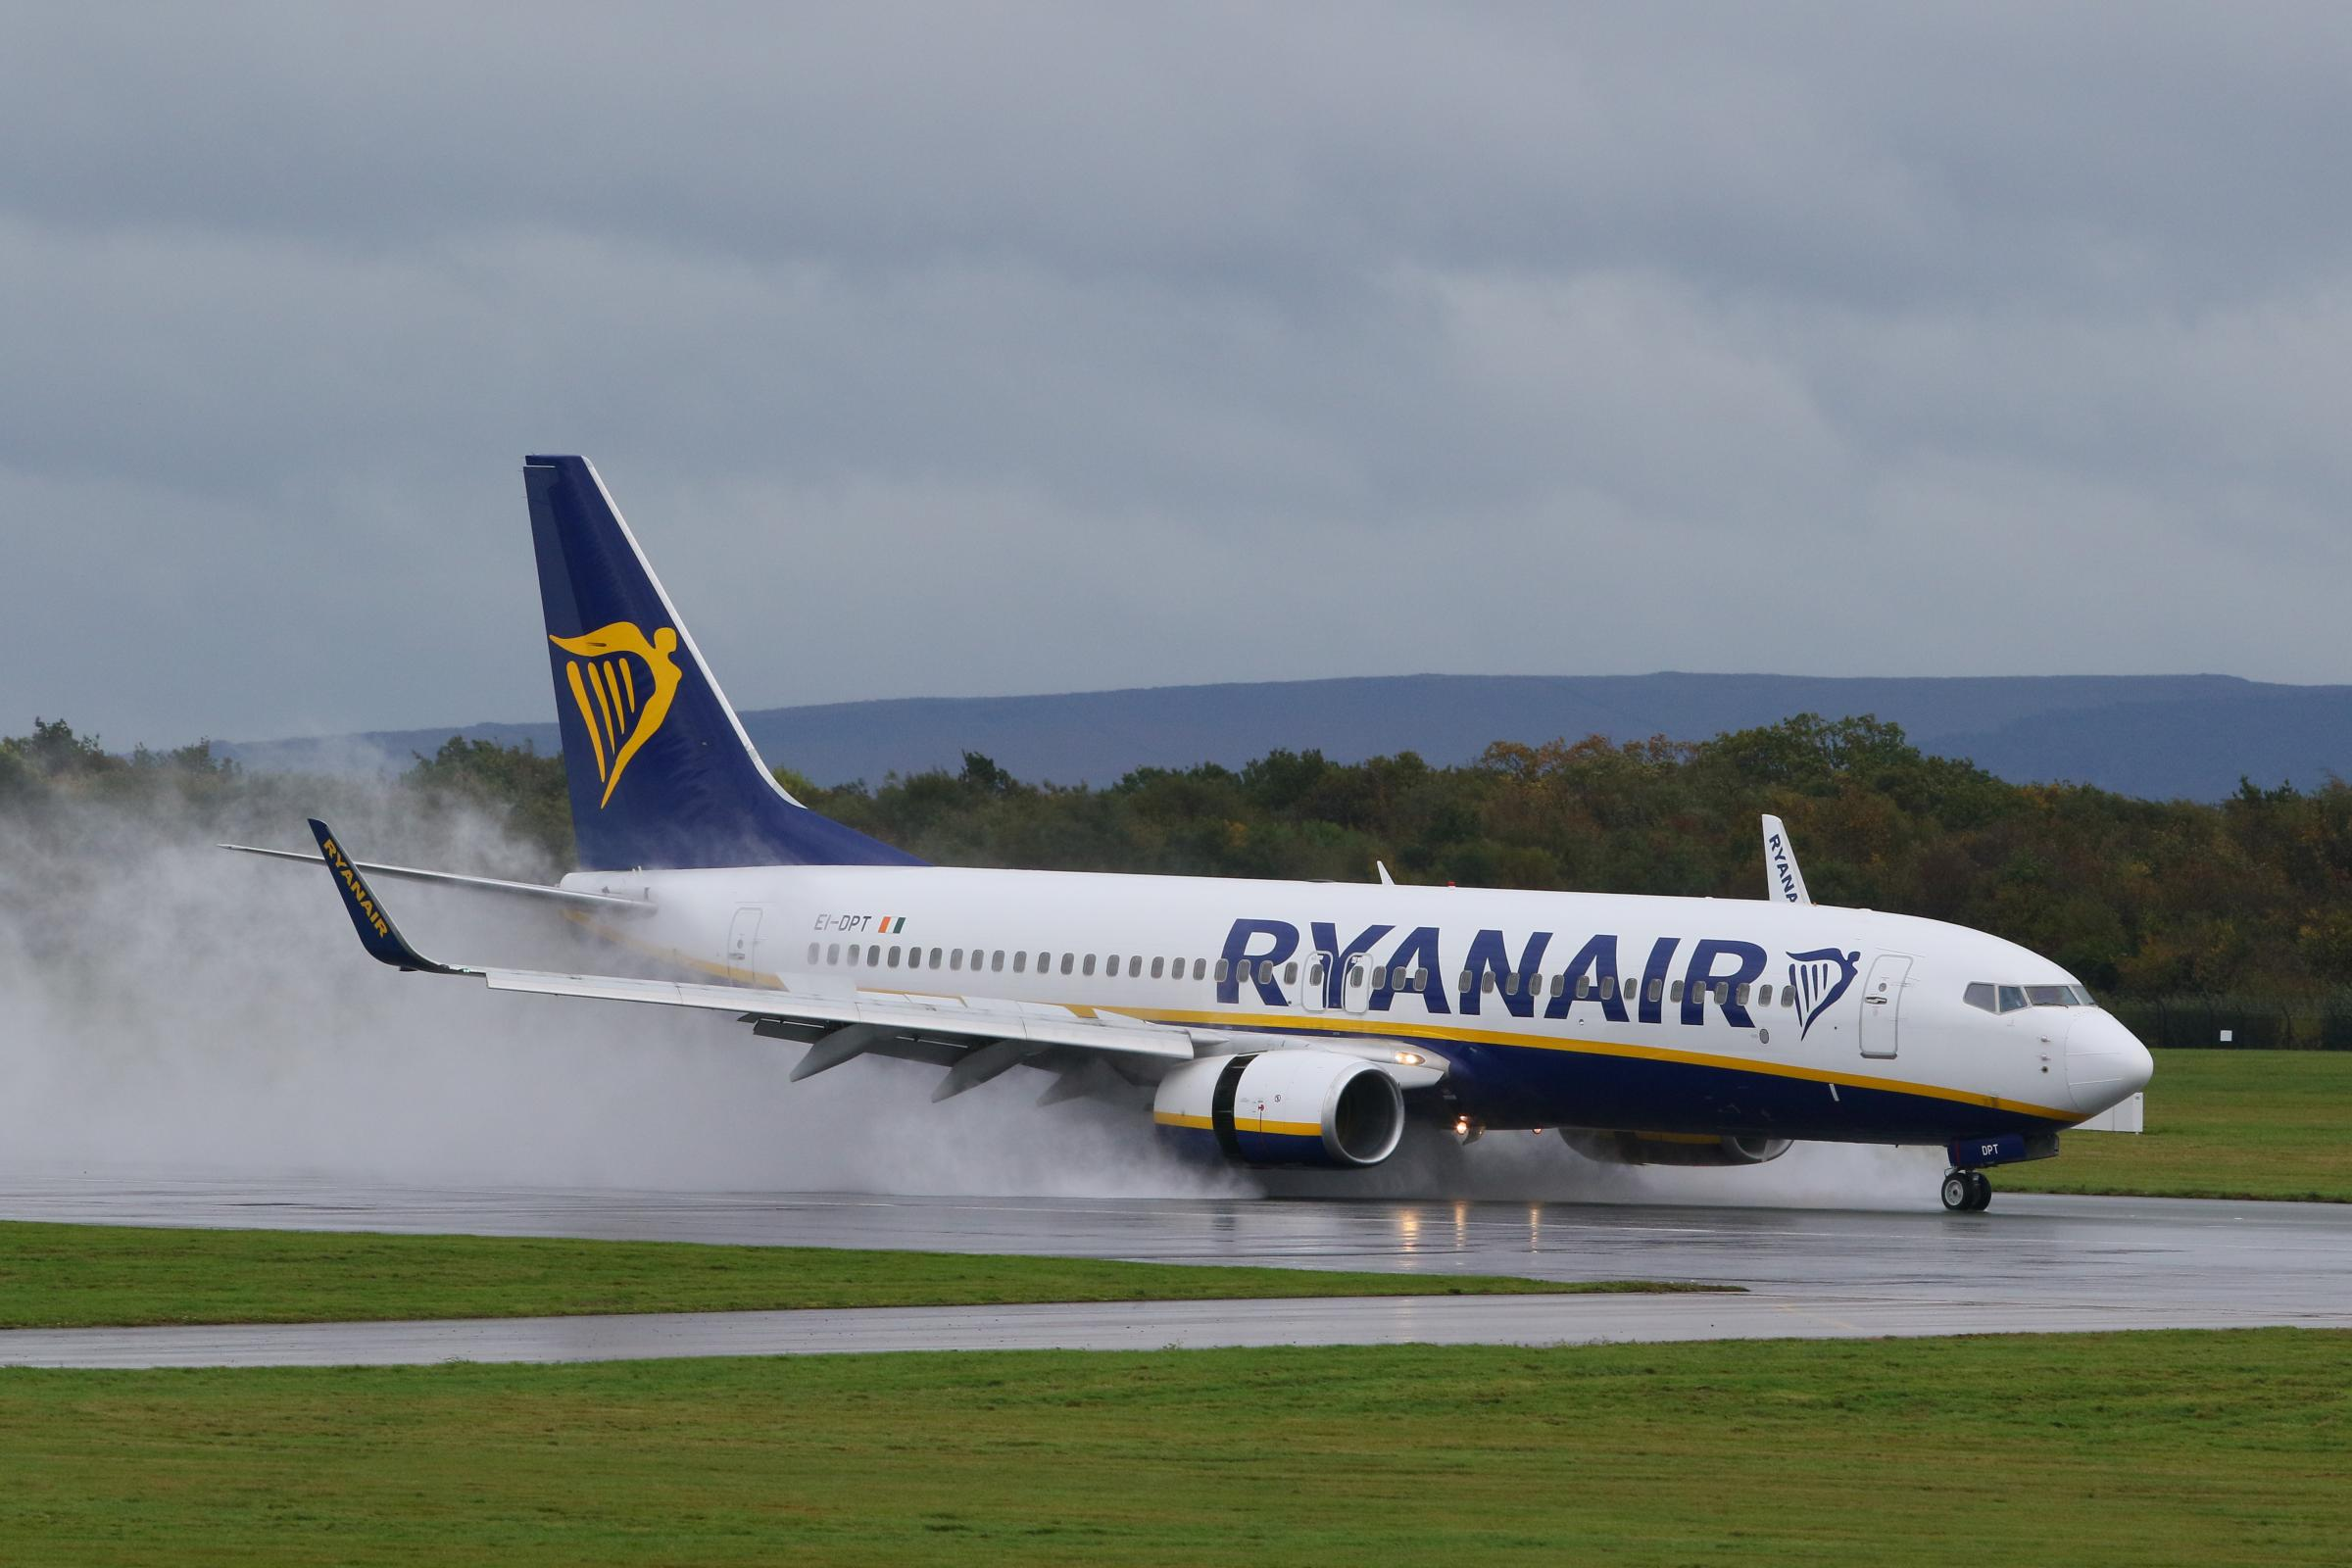 Ryanair criticised for failing to remove 'racist passenger' from flight